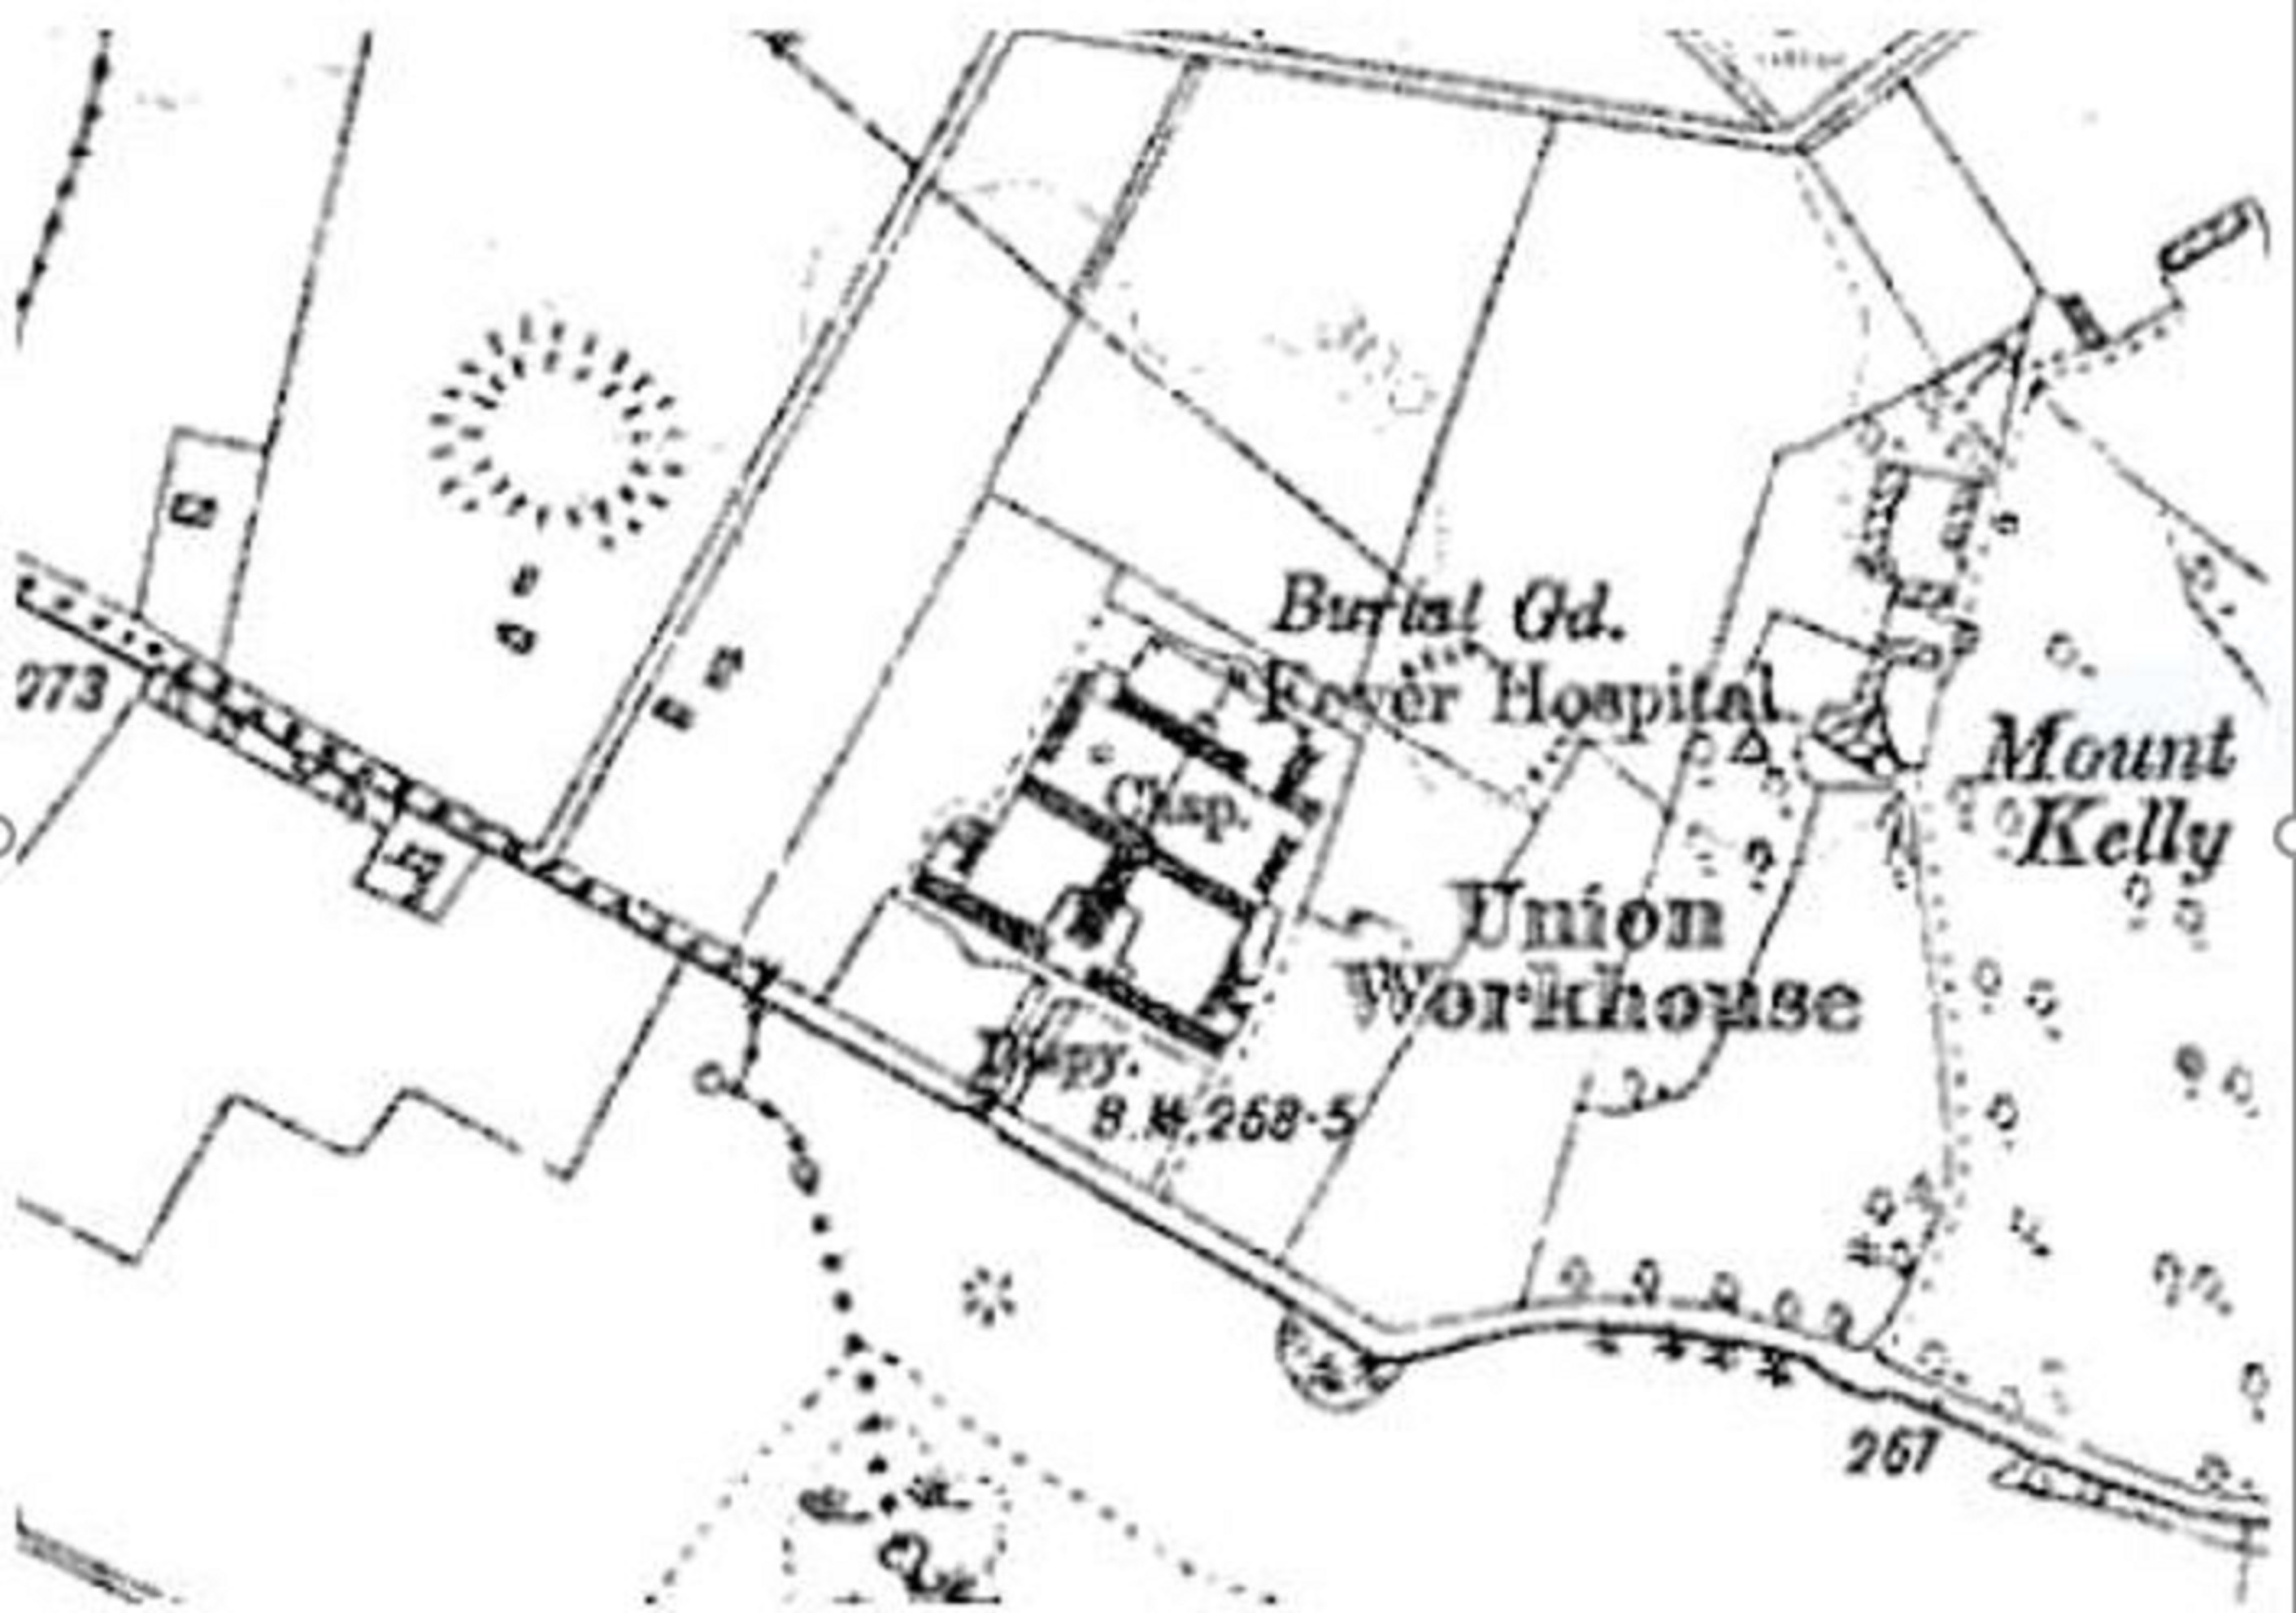 Workhouse Plan